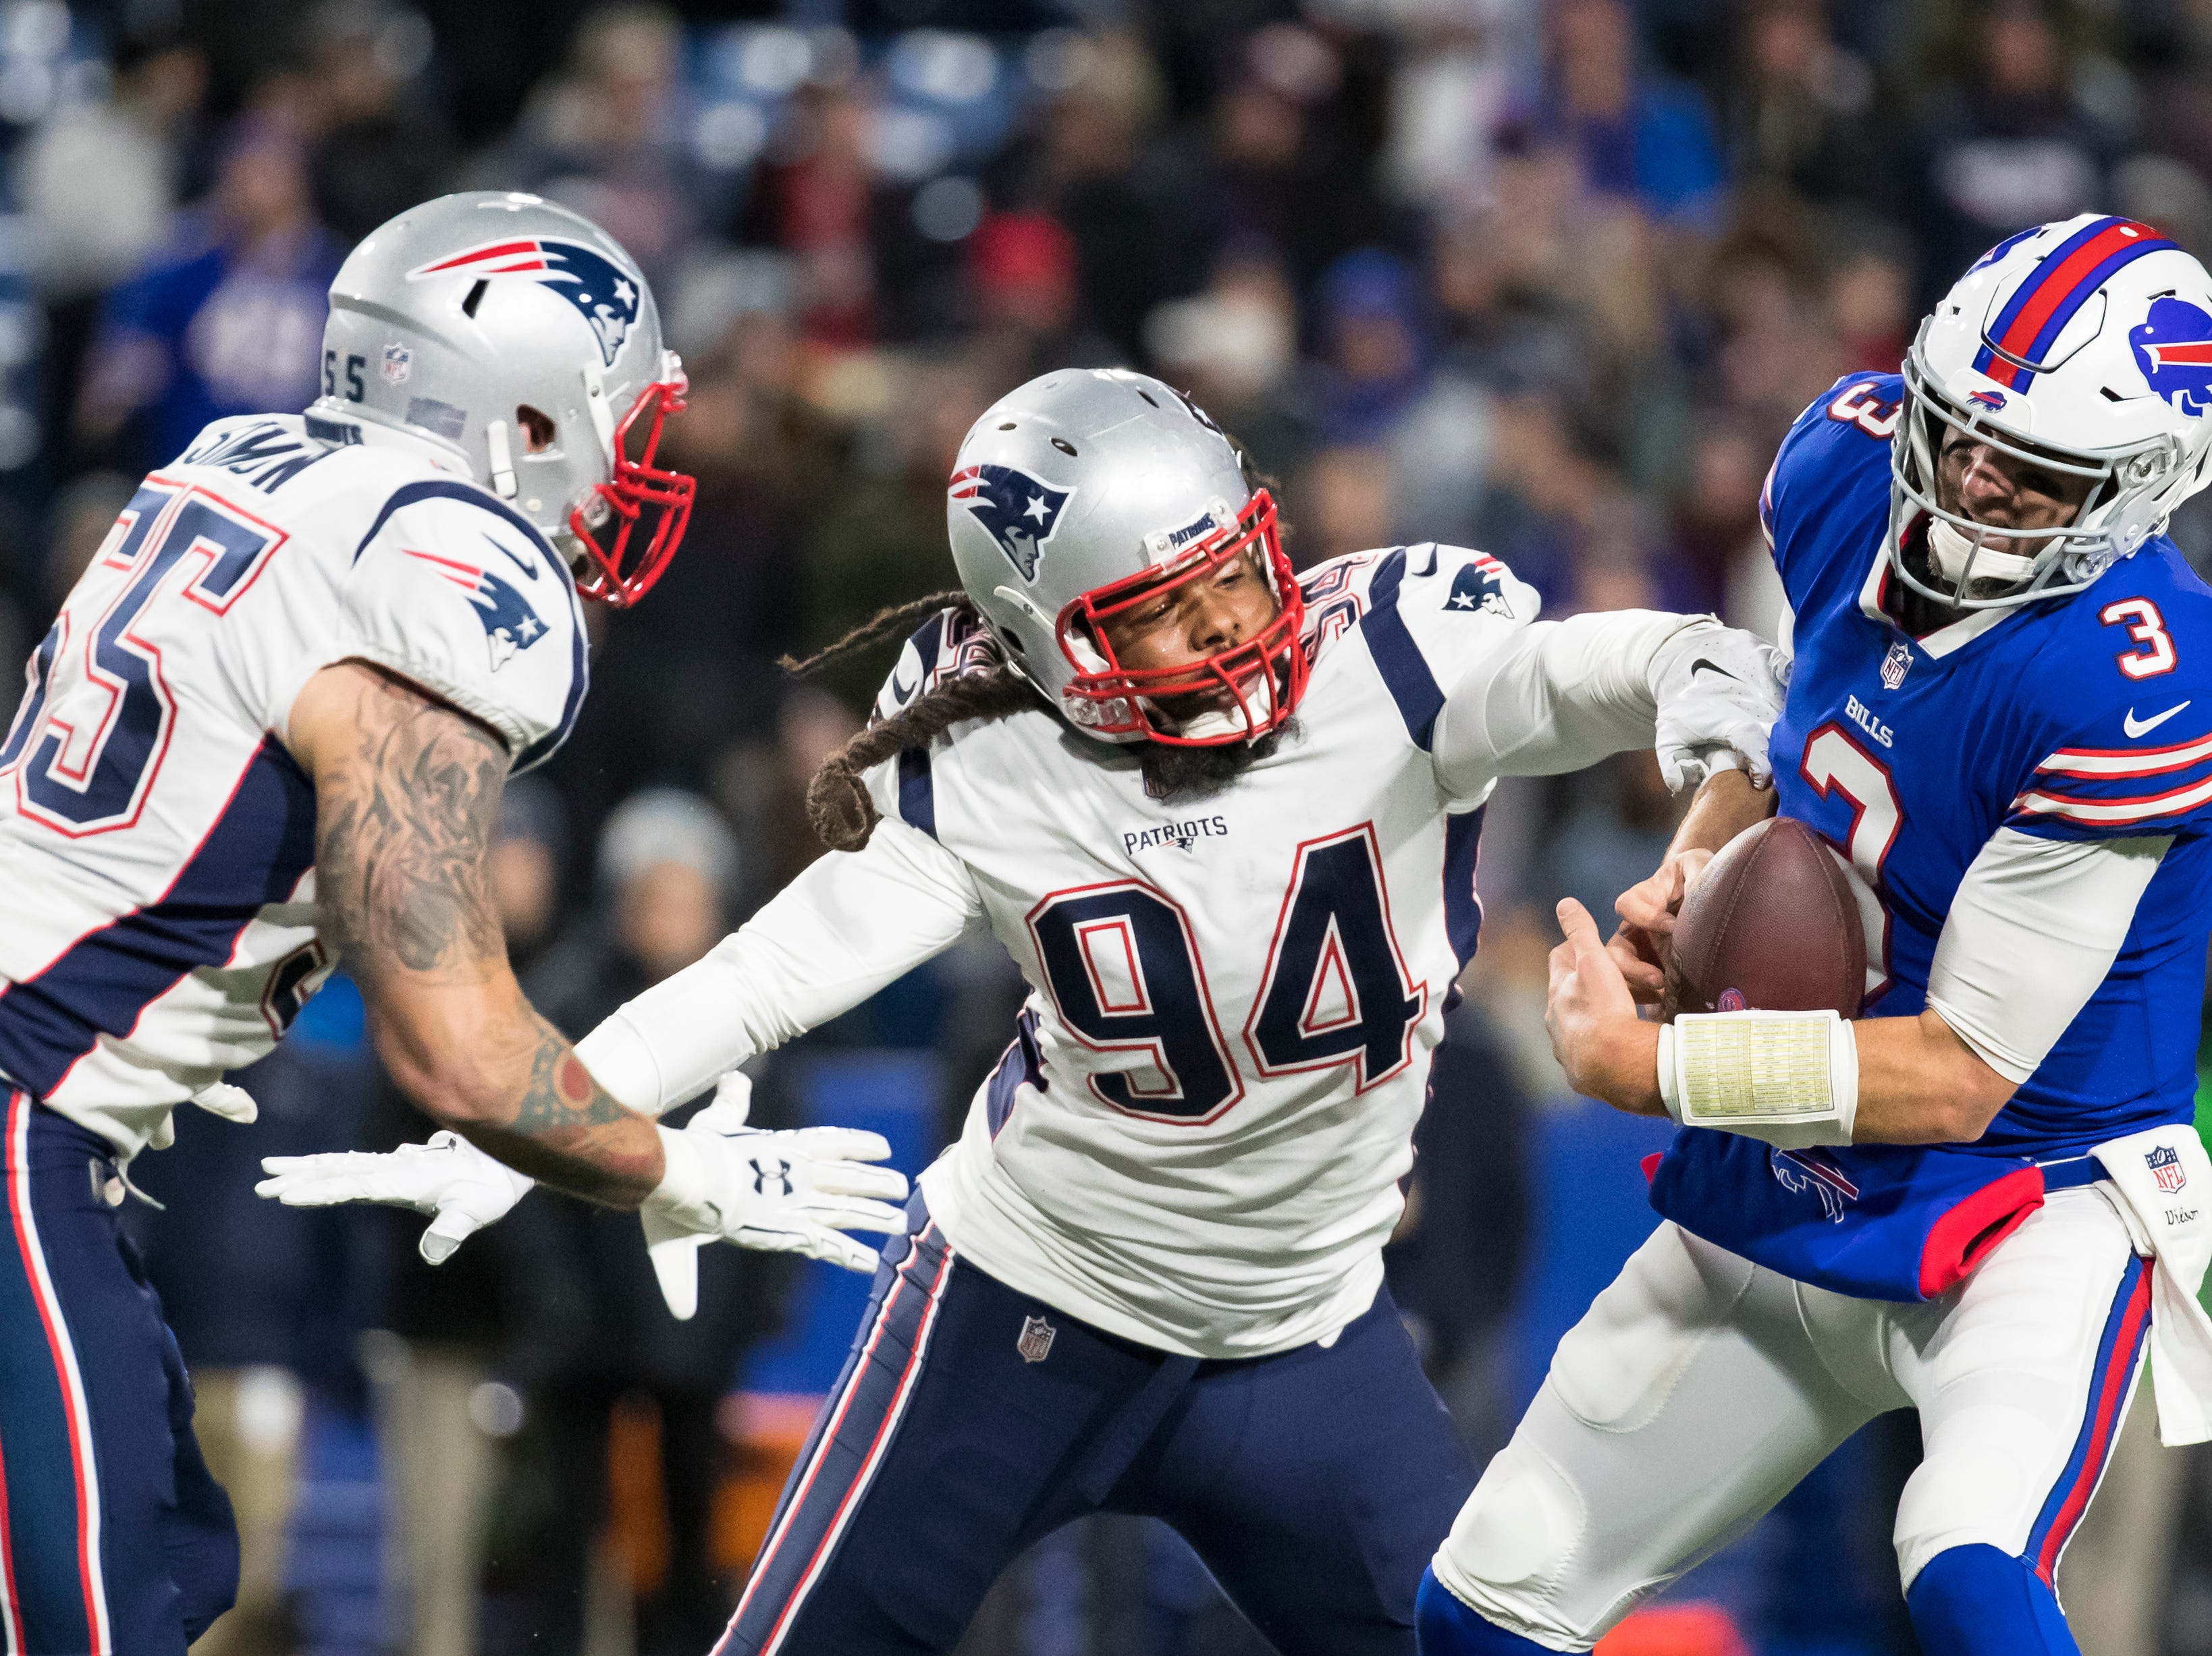 ORCHARD PARK, NY - OCTOBER 29:  Derek Anderson #3 of the Buffalo Bills is sacked by Adrian Clayborn #94 and John Simon #55 of the New England Patriots during the fourth quarter at New Era Field on October 29, 2018 in Orchard Park, New York. New England defeats Buffalo 25-6.  (Photo by Brett Carlsen/Getty Images)